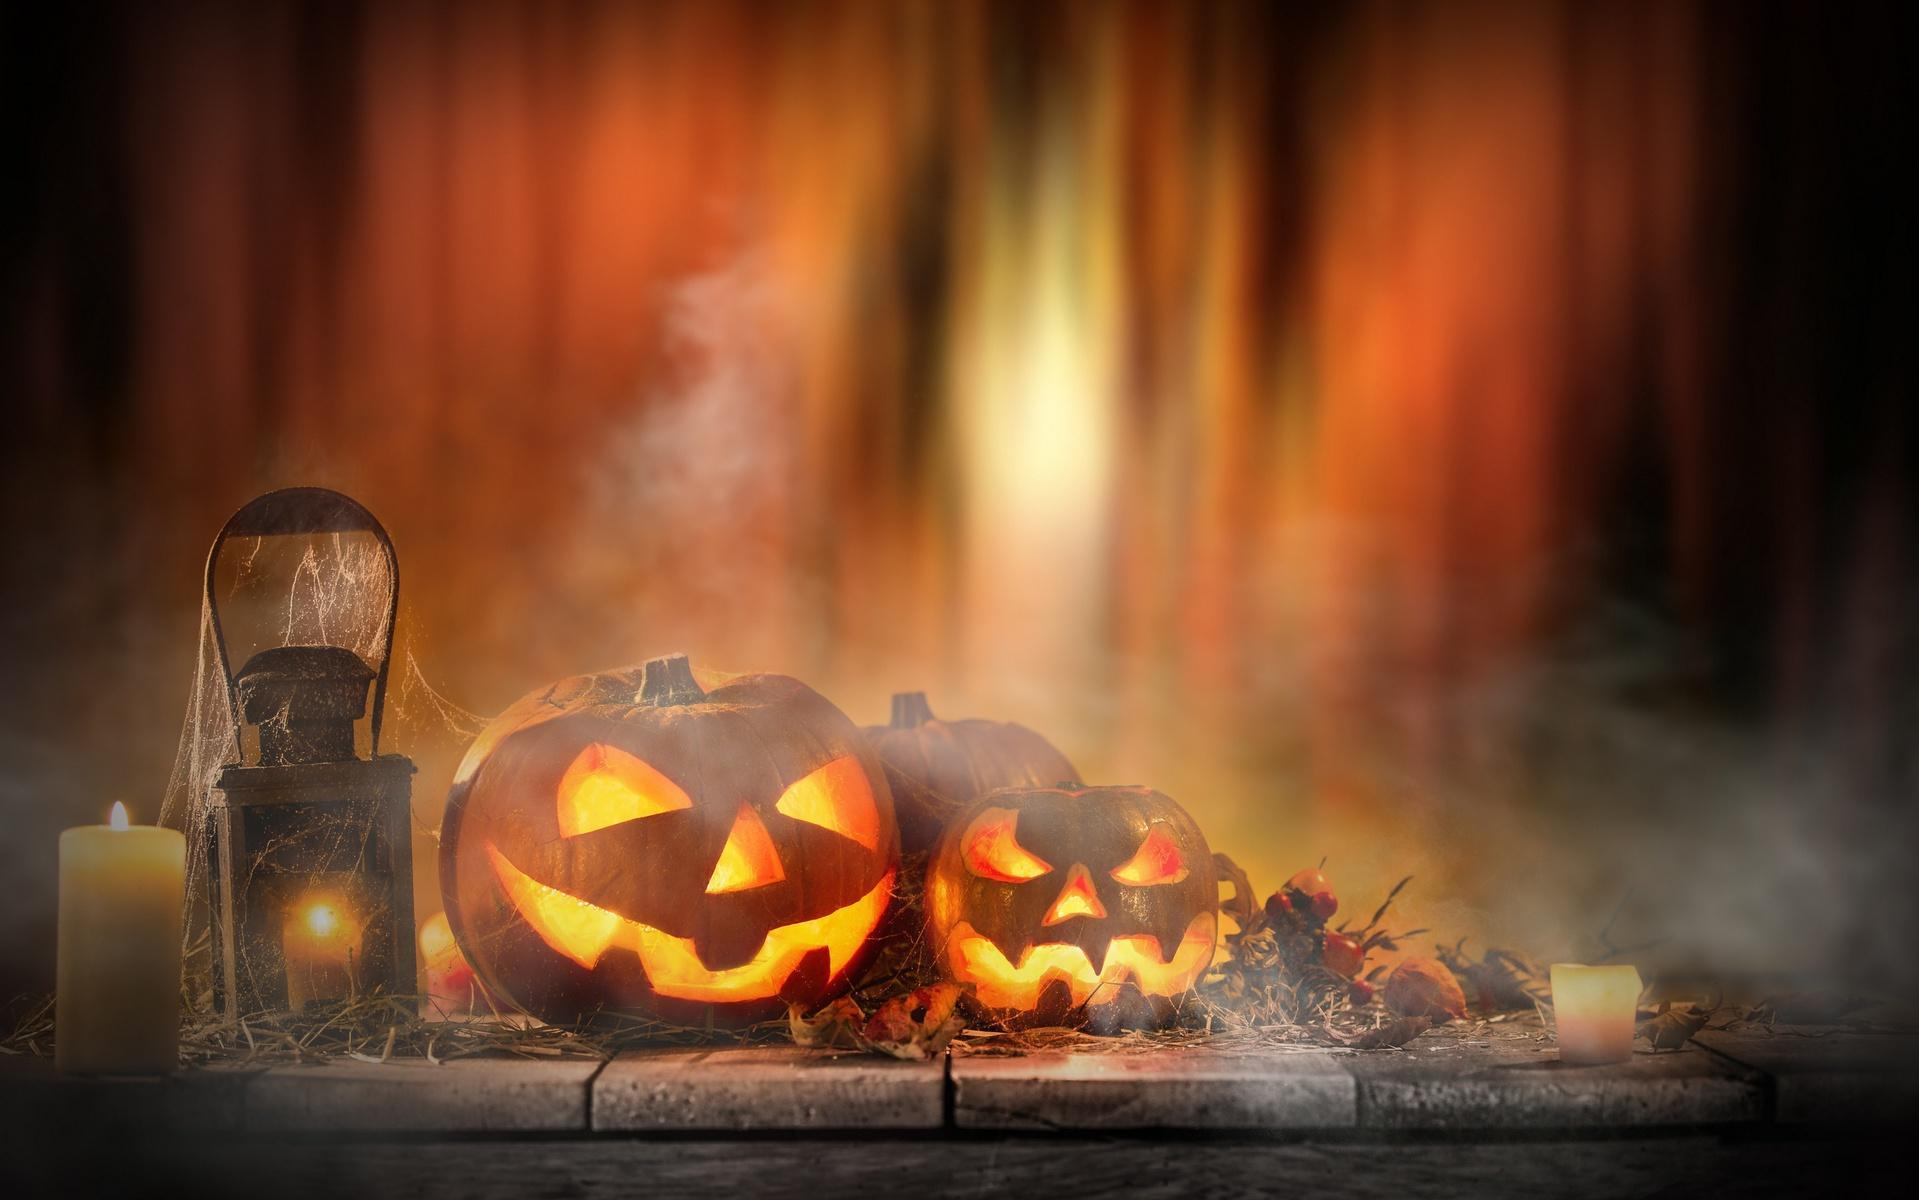 Halloween Wallpaper Hd Fondos Y Temas For Android Apk